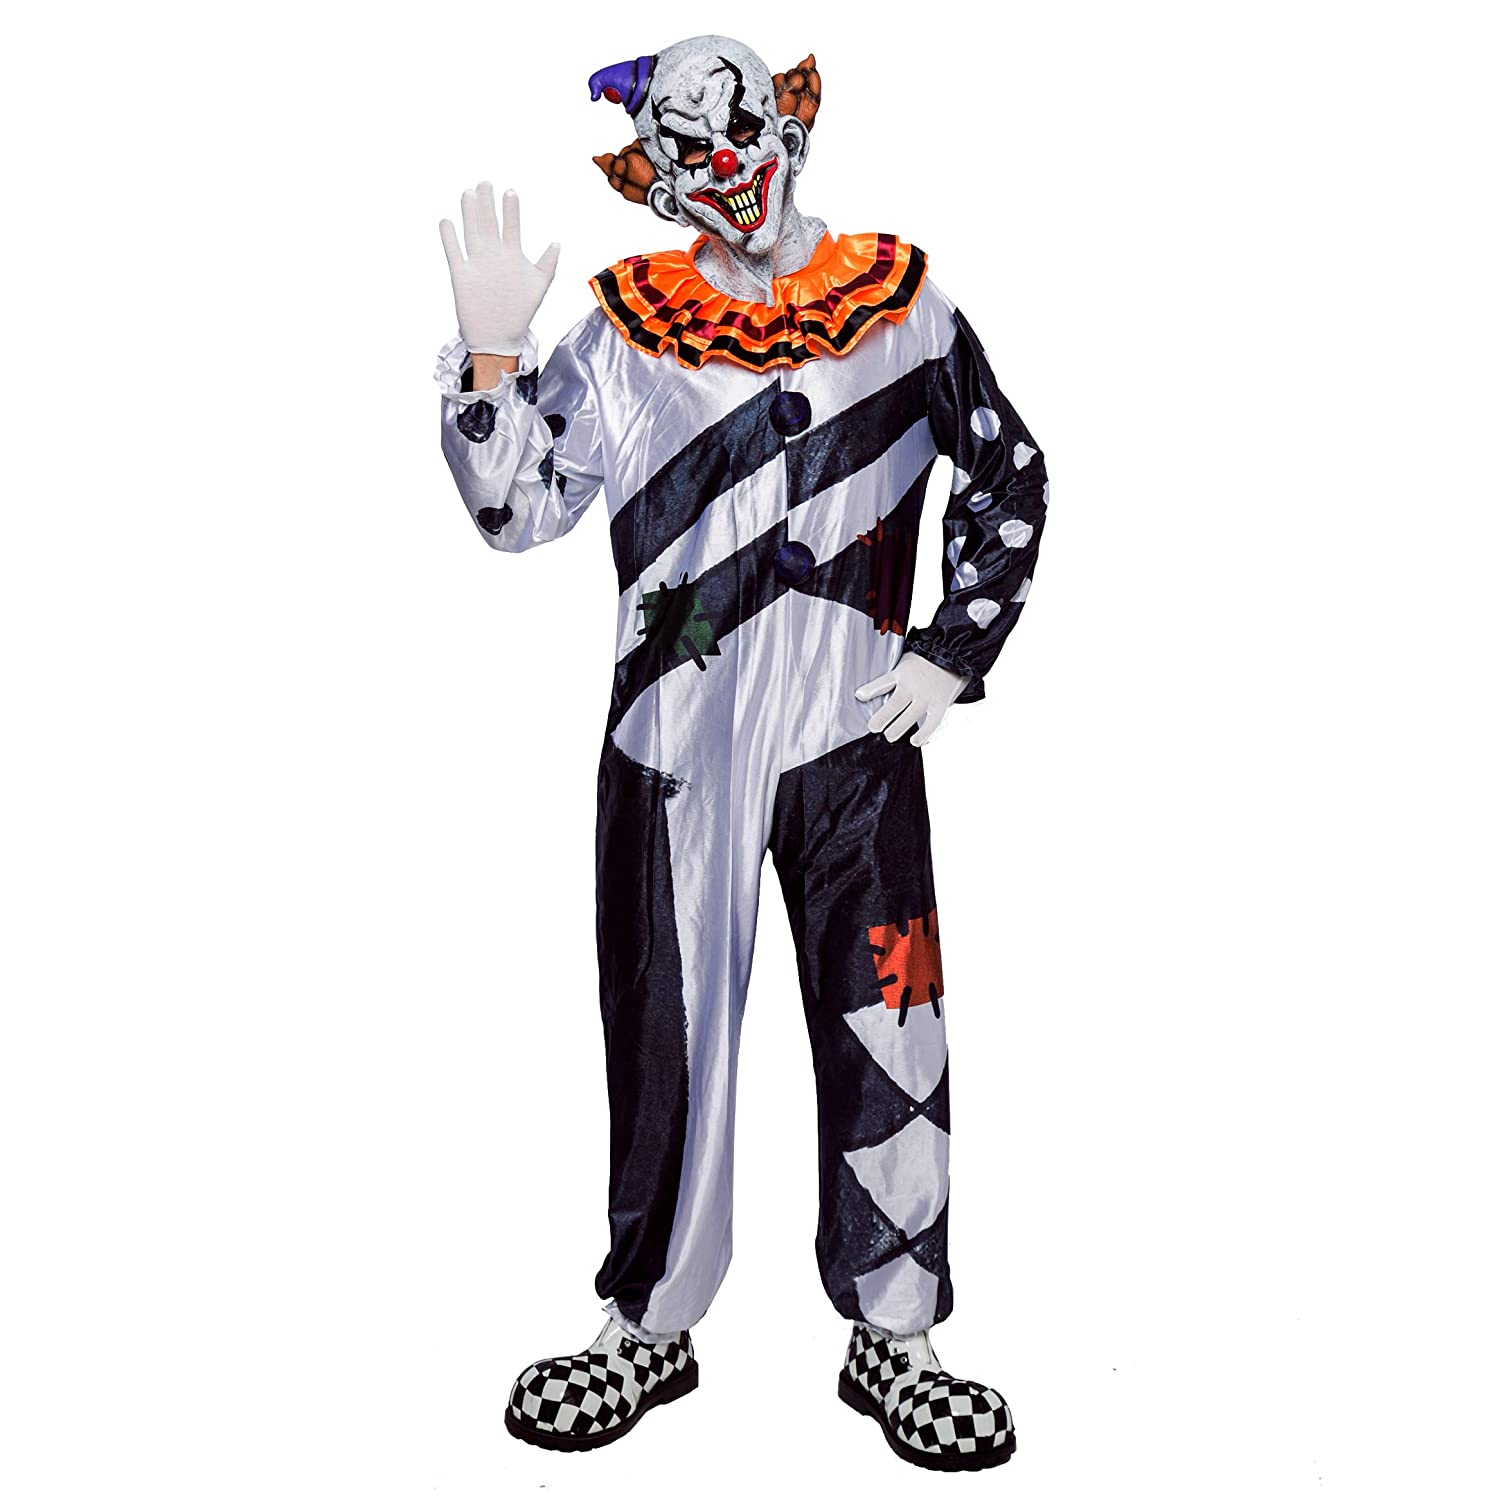 Halloween Costumes Scary Men.Scary Clown Deluxe Men Costume Set For Halloween Dress Up Party Role Play And Carnival Cosplay